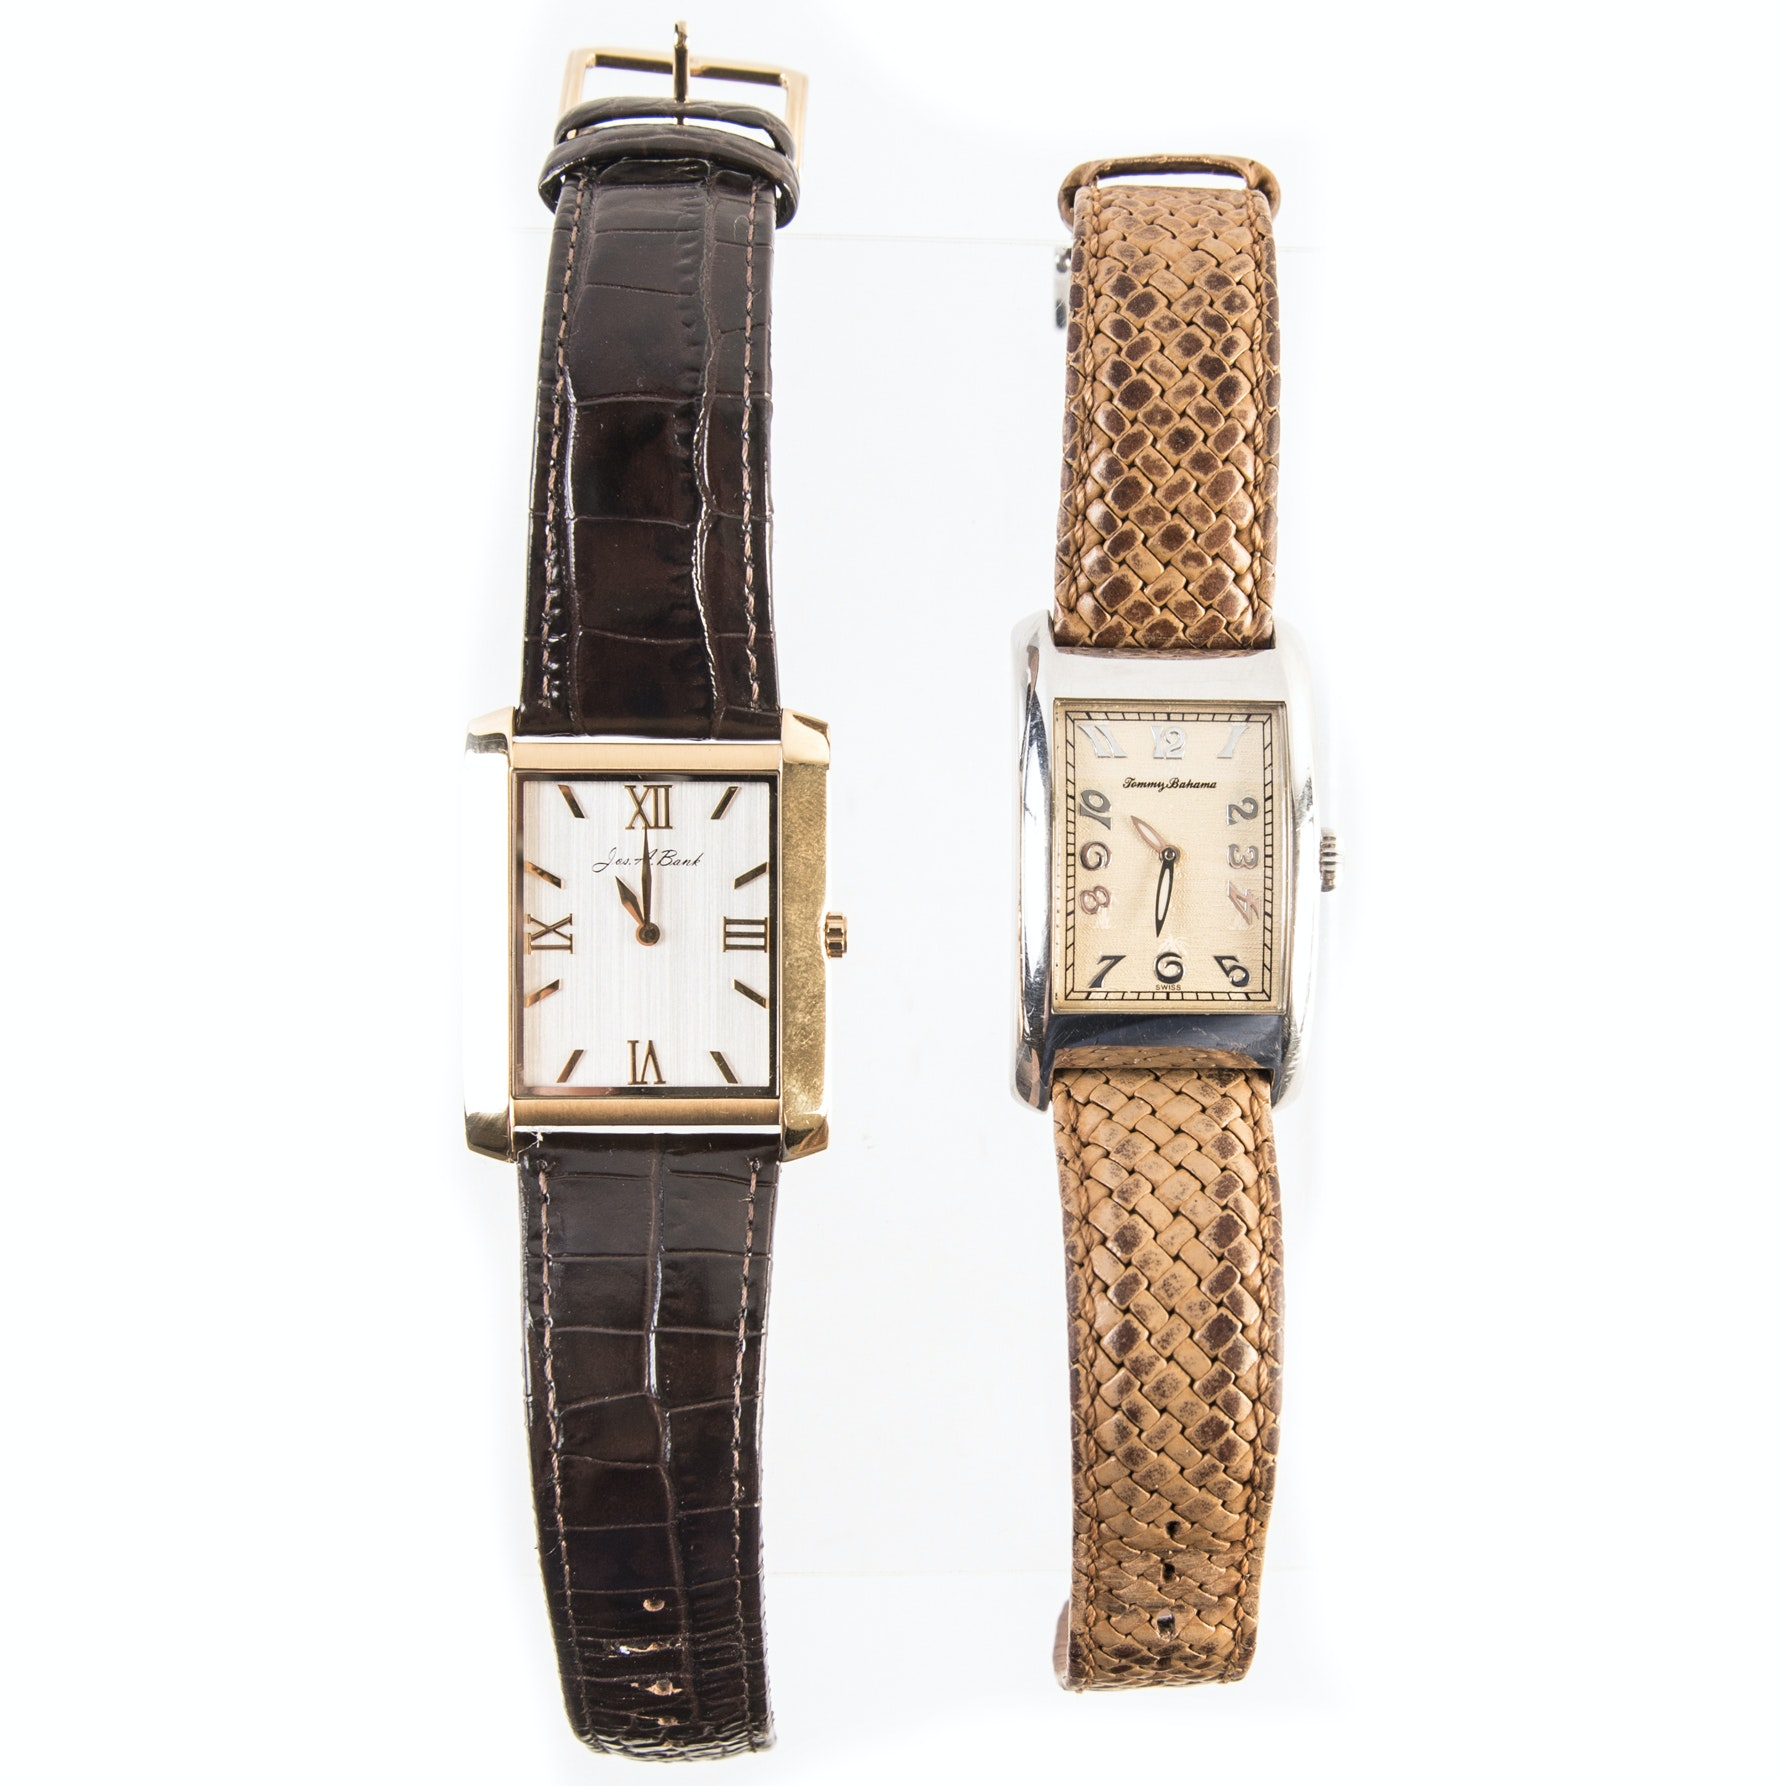 Collection of Wristwatches